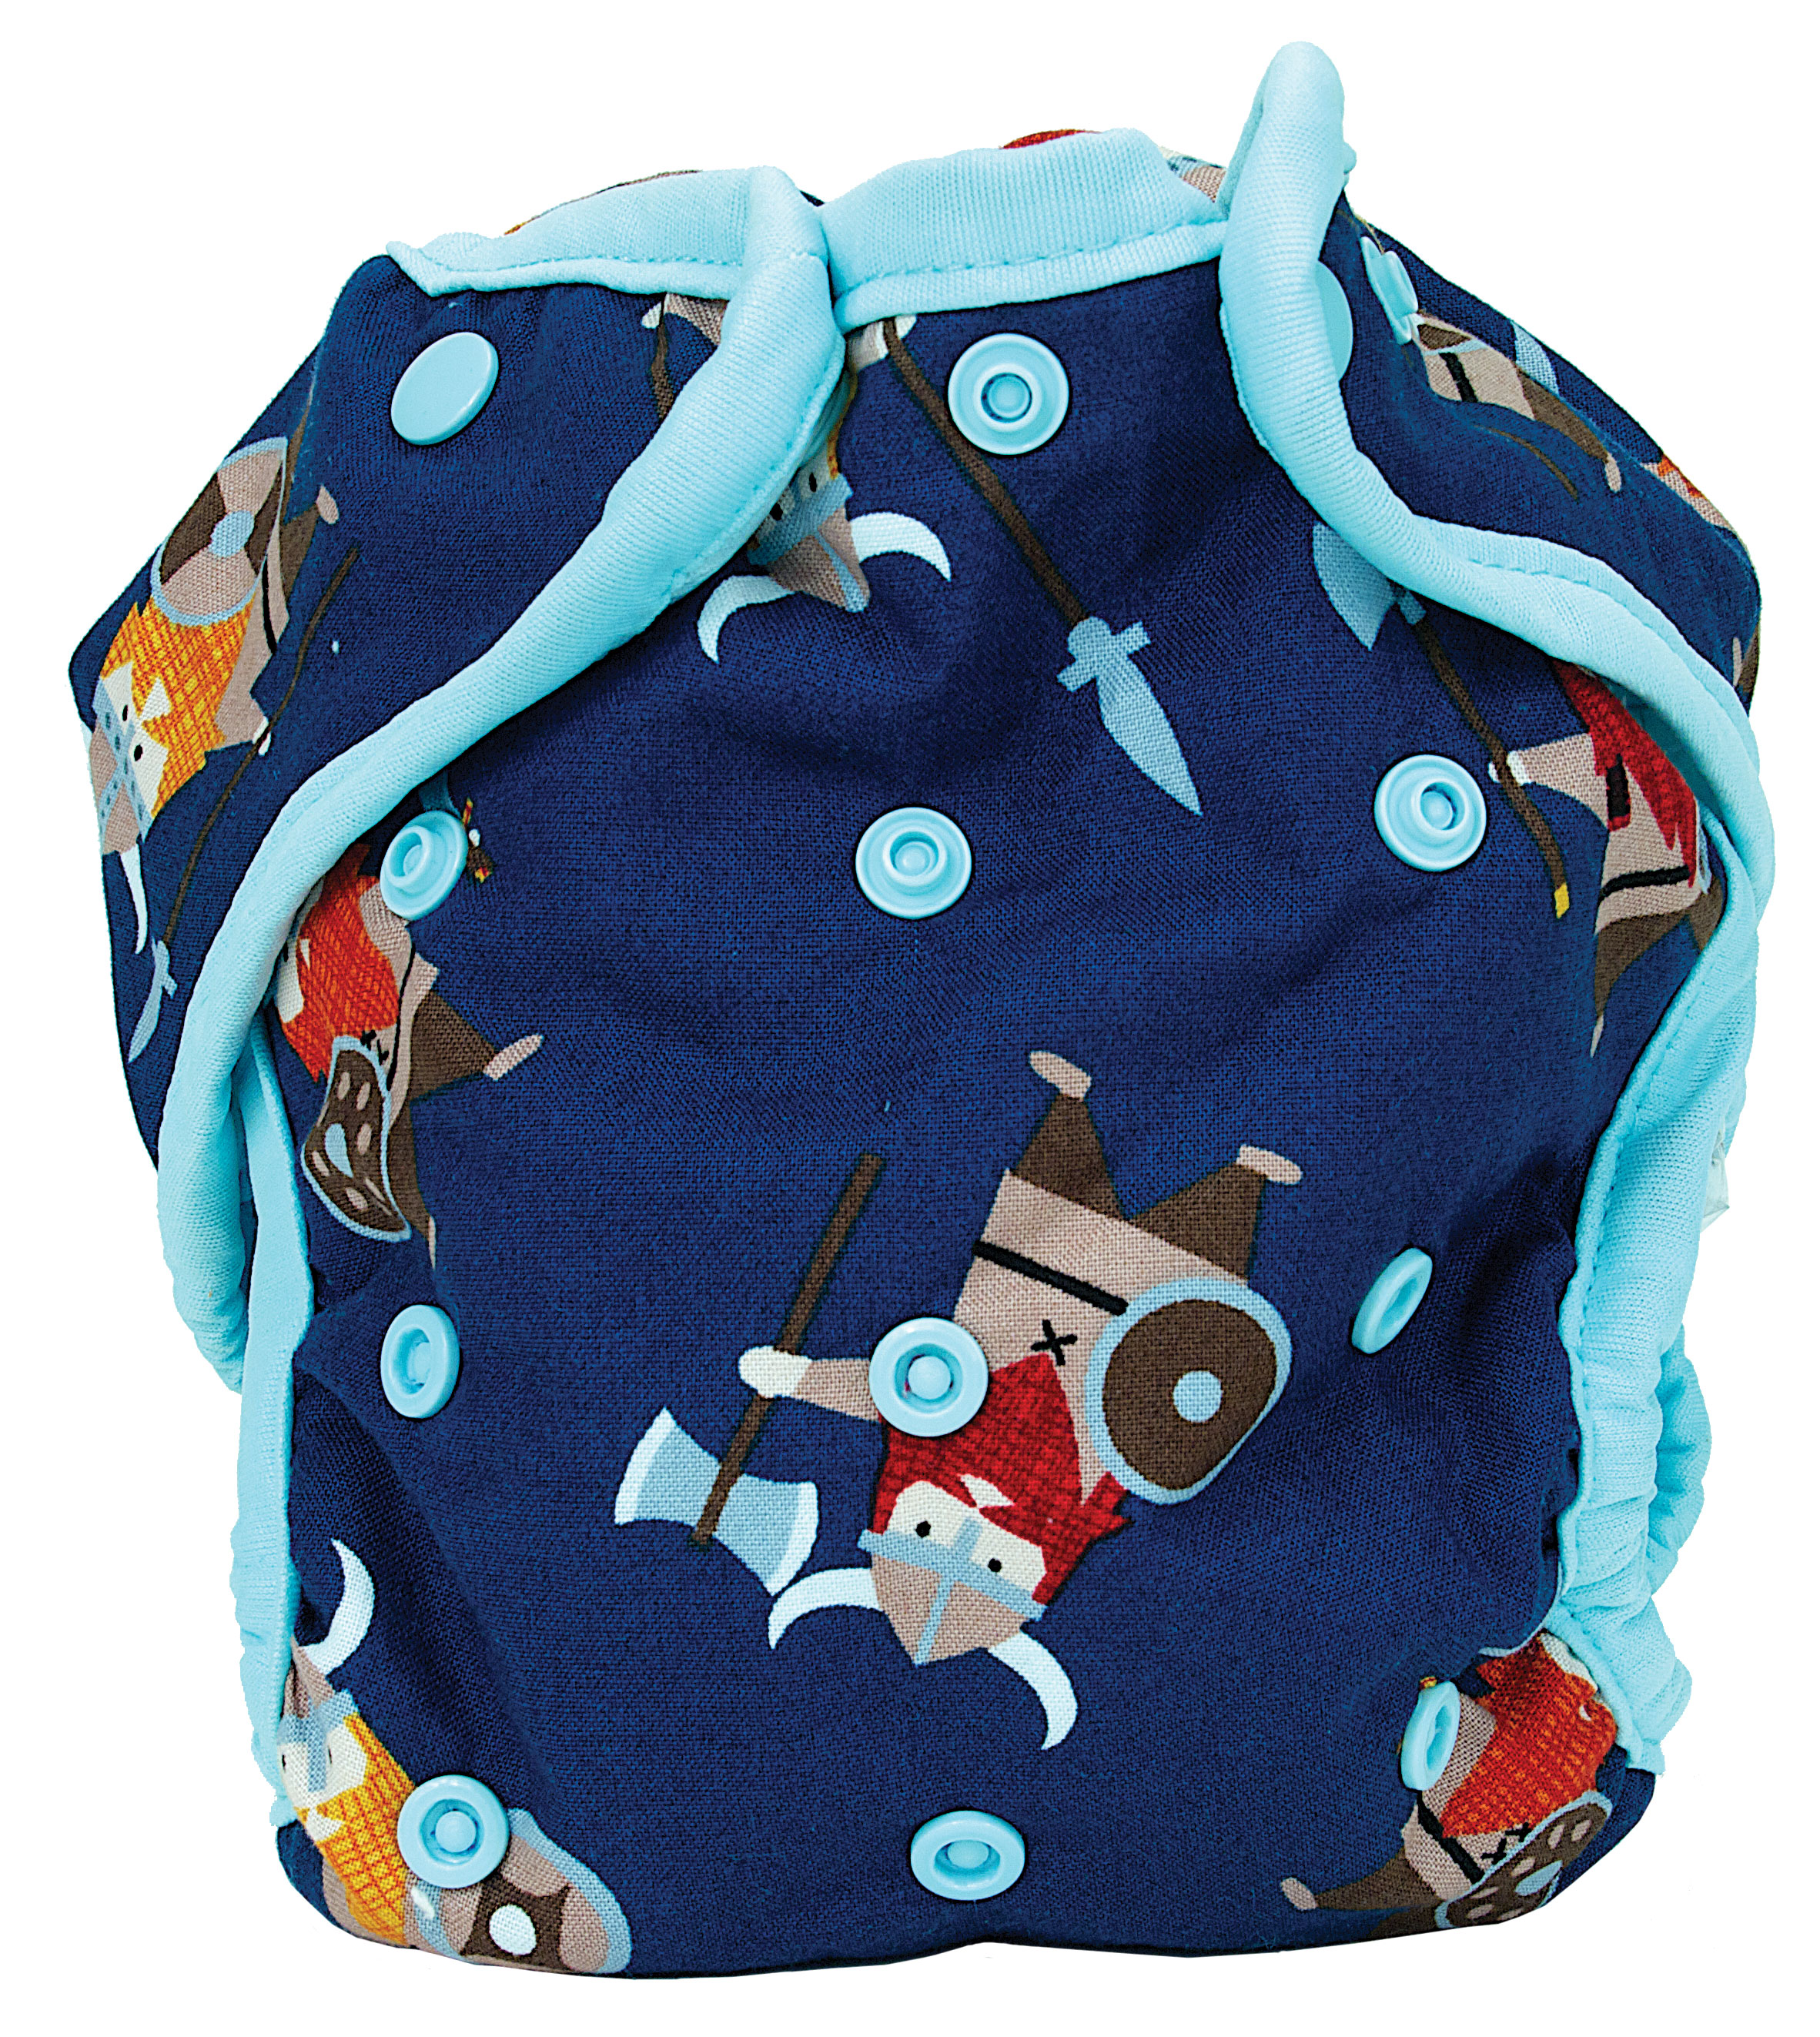 Kissaluvs Kutie One Size Diaper Cover - B00ATYHHTE.main